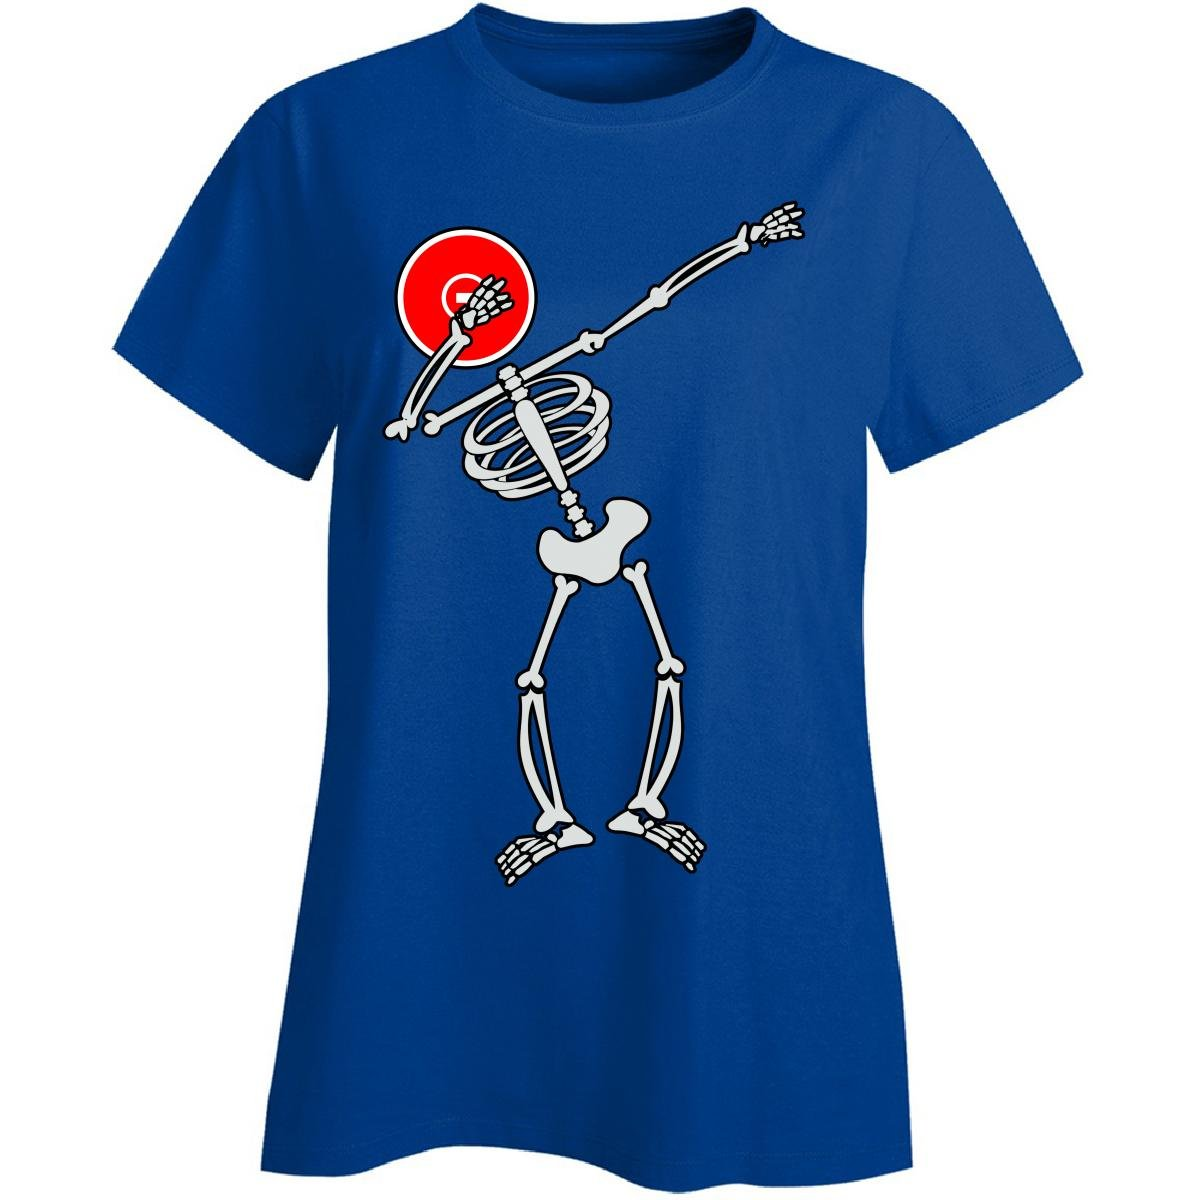 Dabbing Skeleton With Wrestling Mat Head - Ladies T-shirt Ladies 2xl Royal by Eternally Gifted